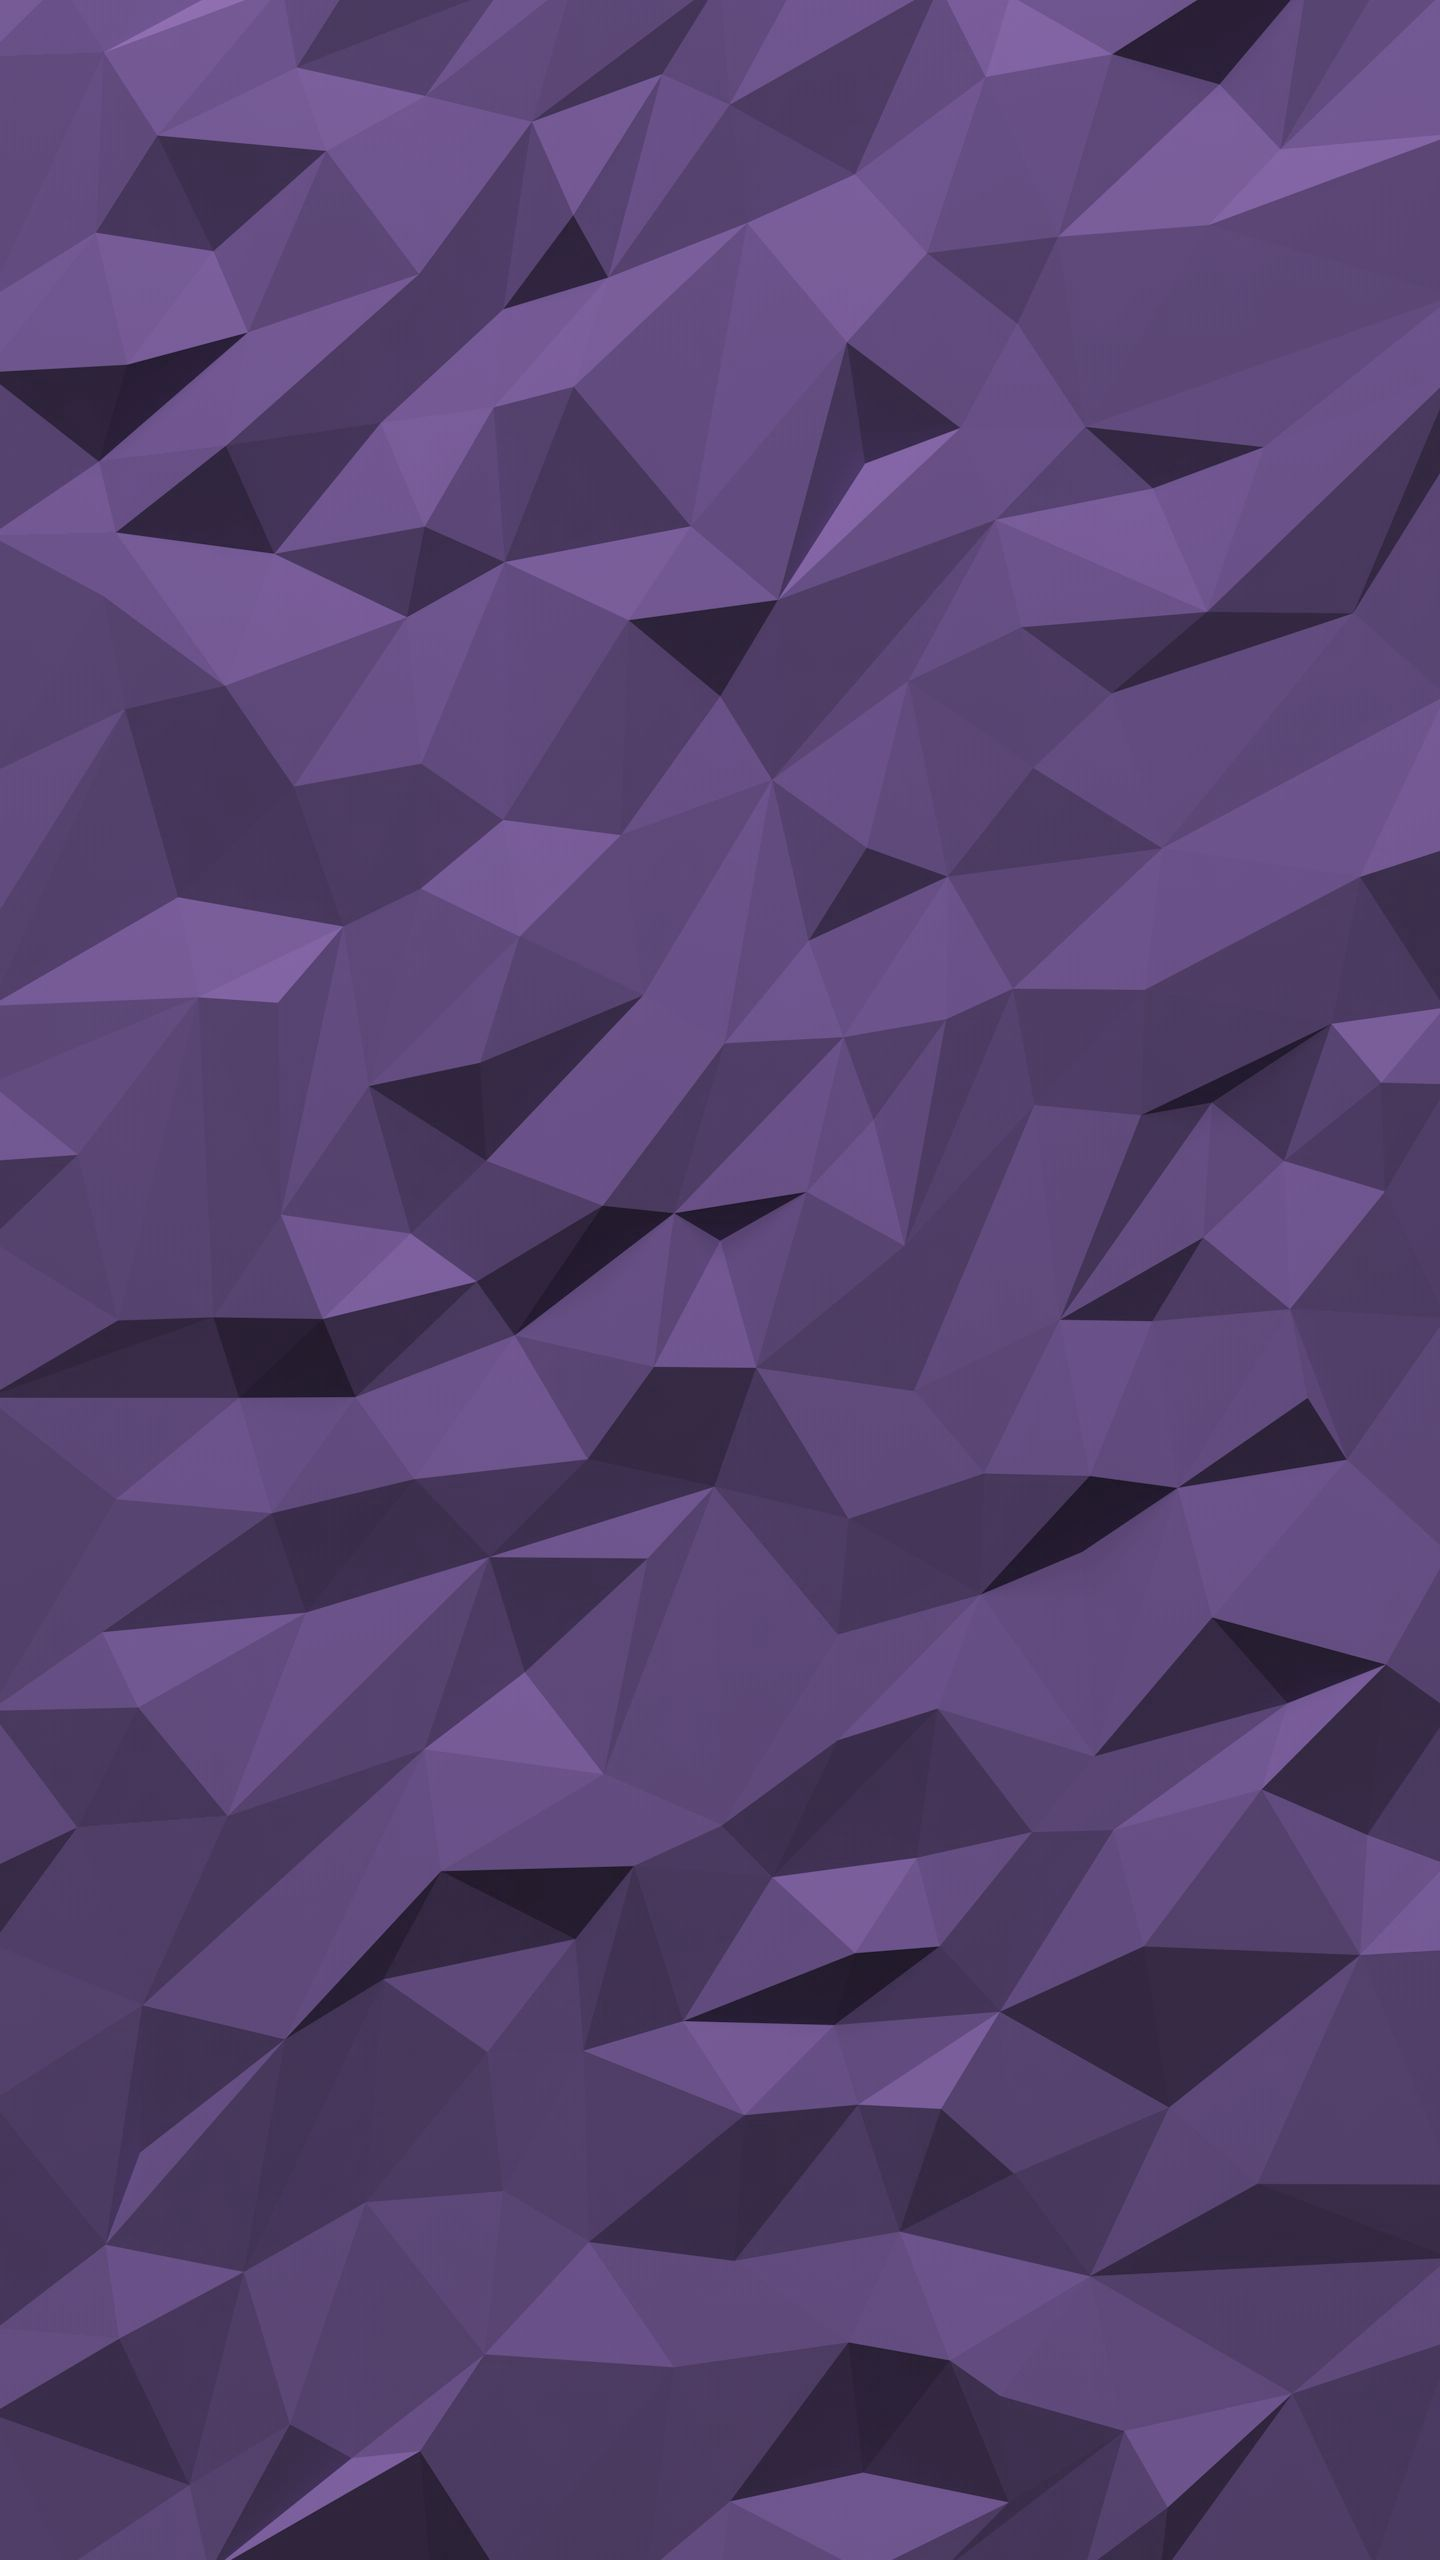 95439 download wallpaper Textures, Texture, Pattern, Triangles, Purple, Violet screensavers and pictures for free